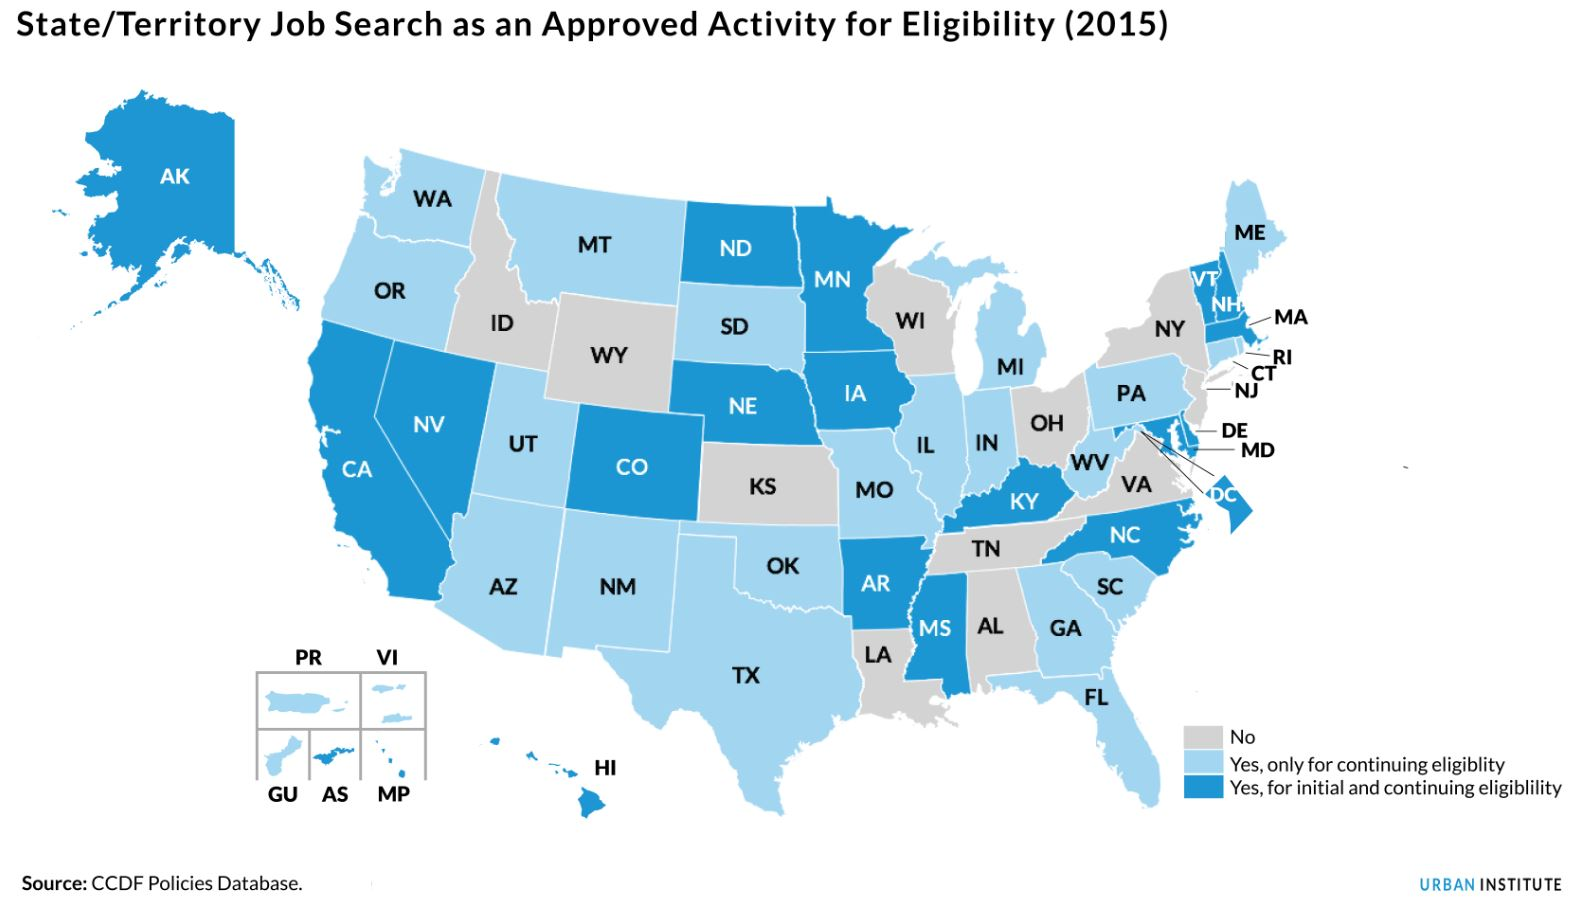 state job search as an approved activity for eligibility